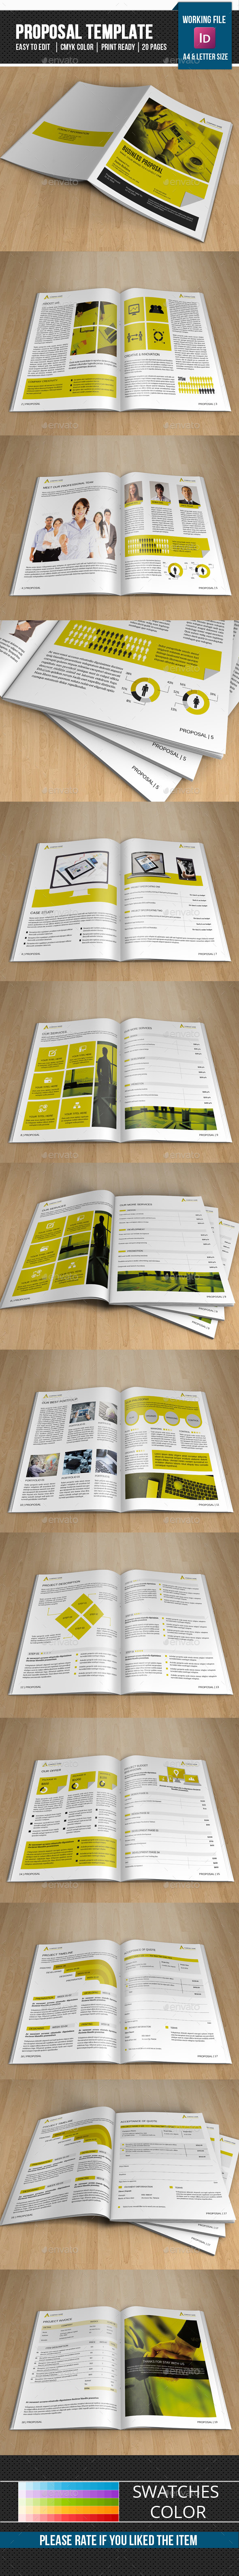 Corporate Proposal Template-V322 - Proposals & Invoices Stationery